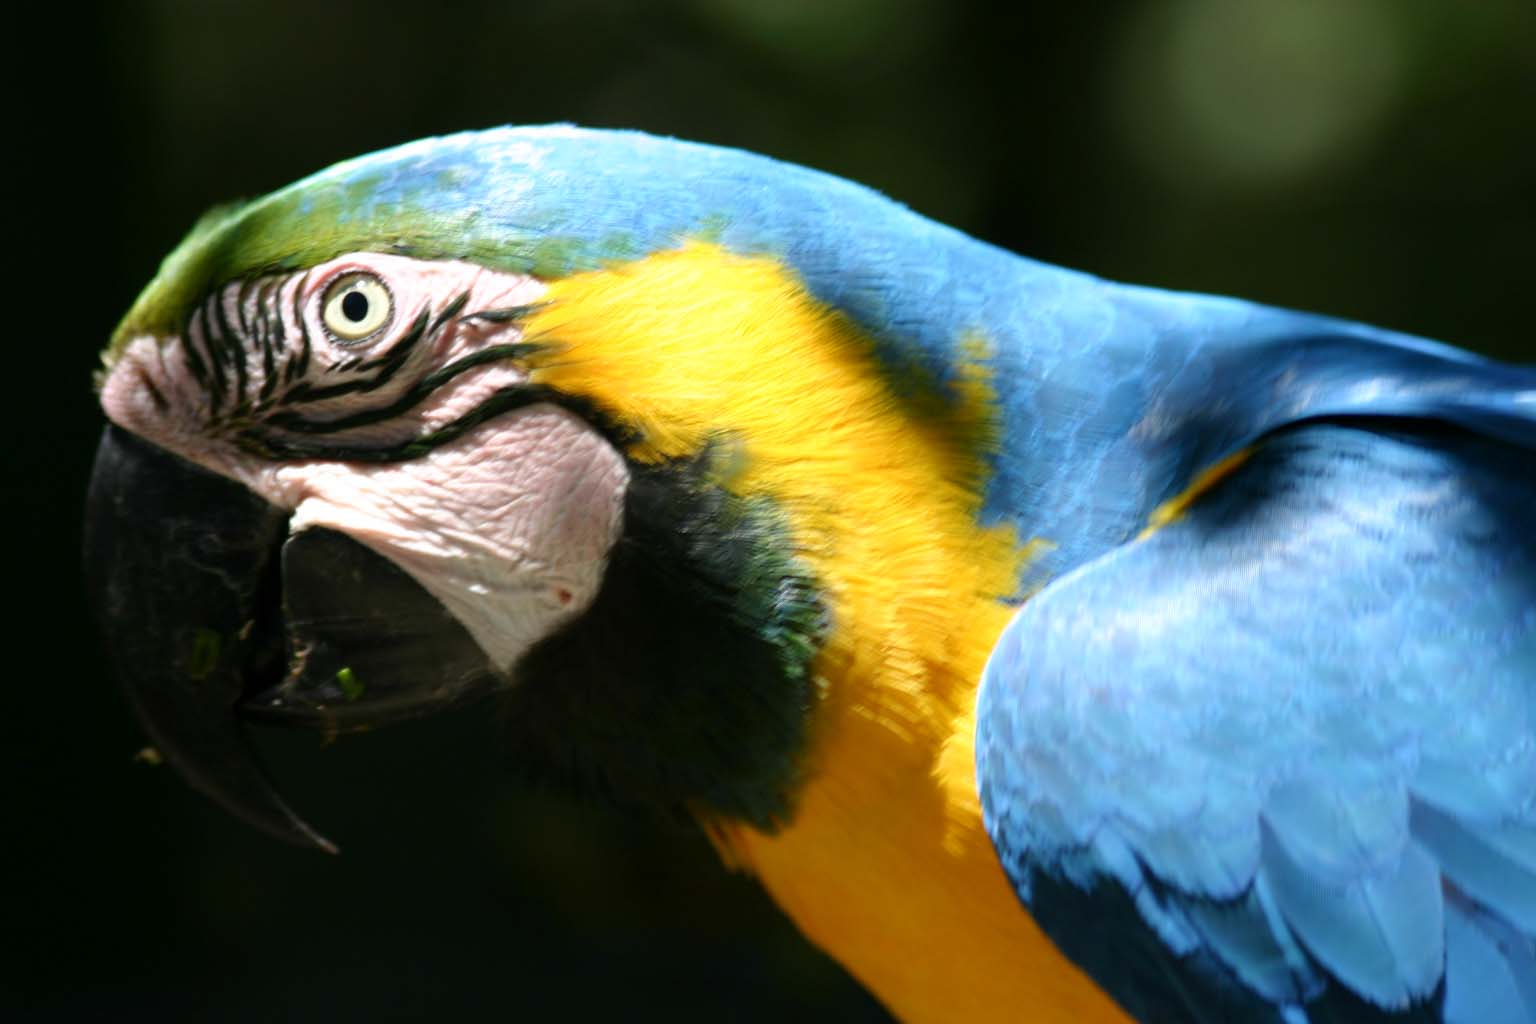 Close up of a Blue and Gold Macaw parrot